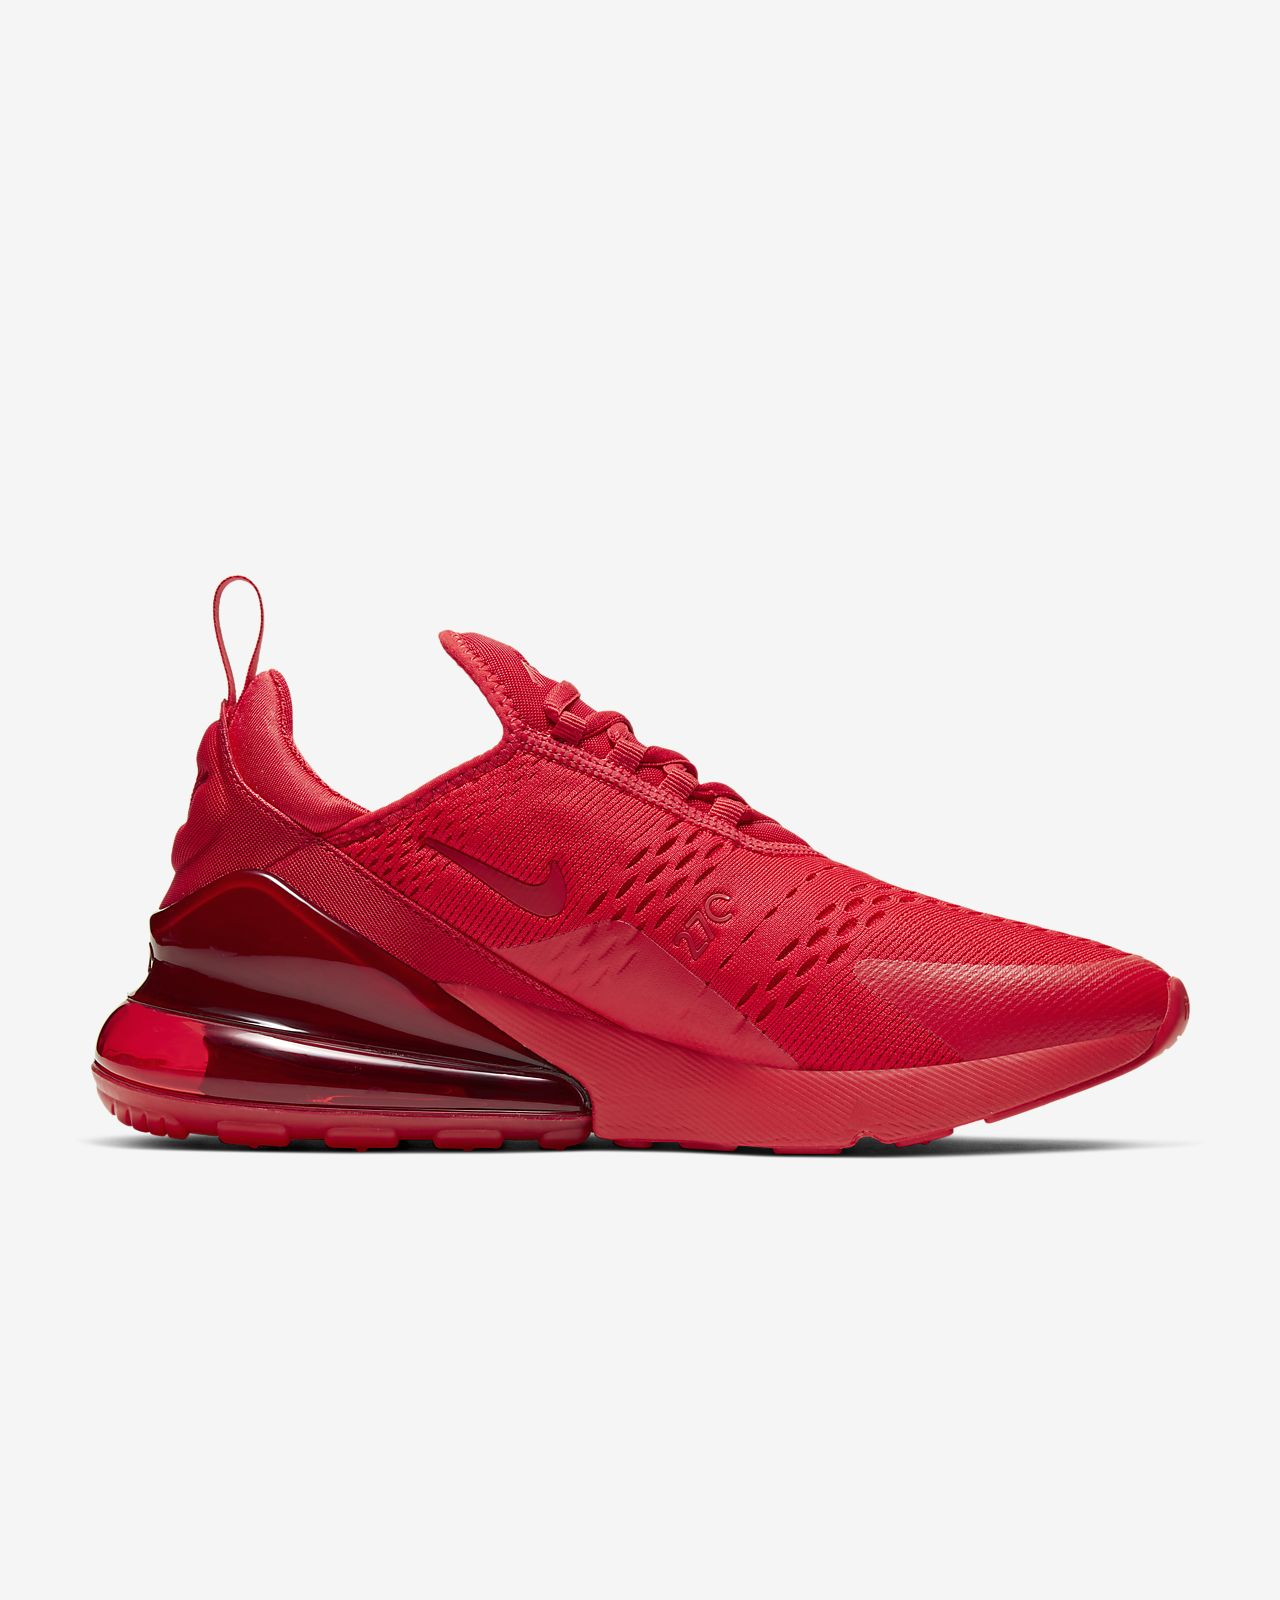 Nike Air Max 270 University Red CV7544 600 Release Date SBD